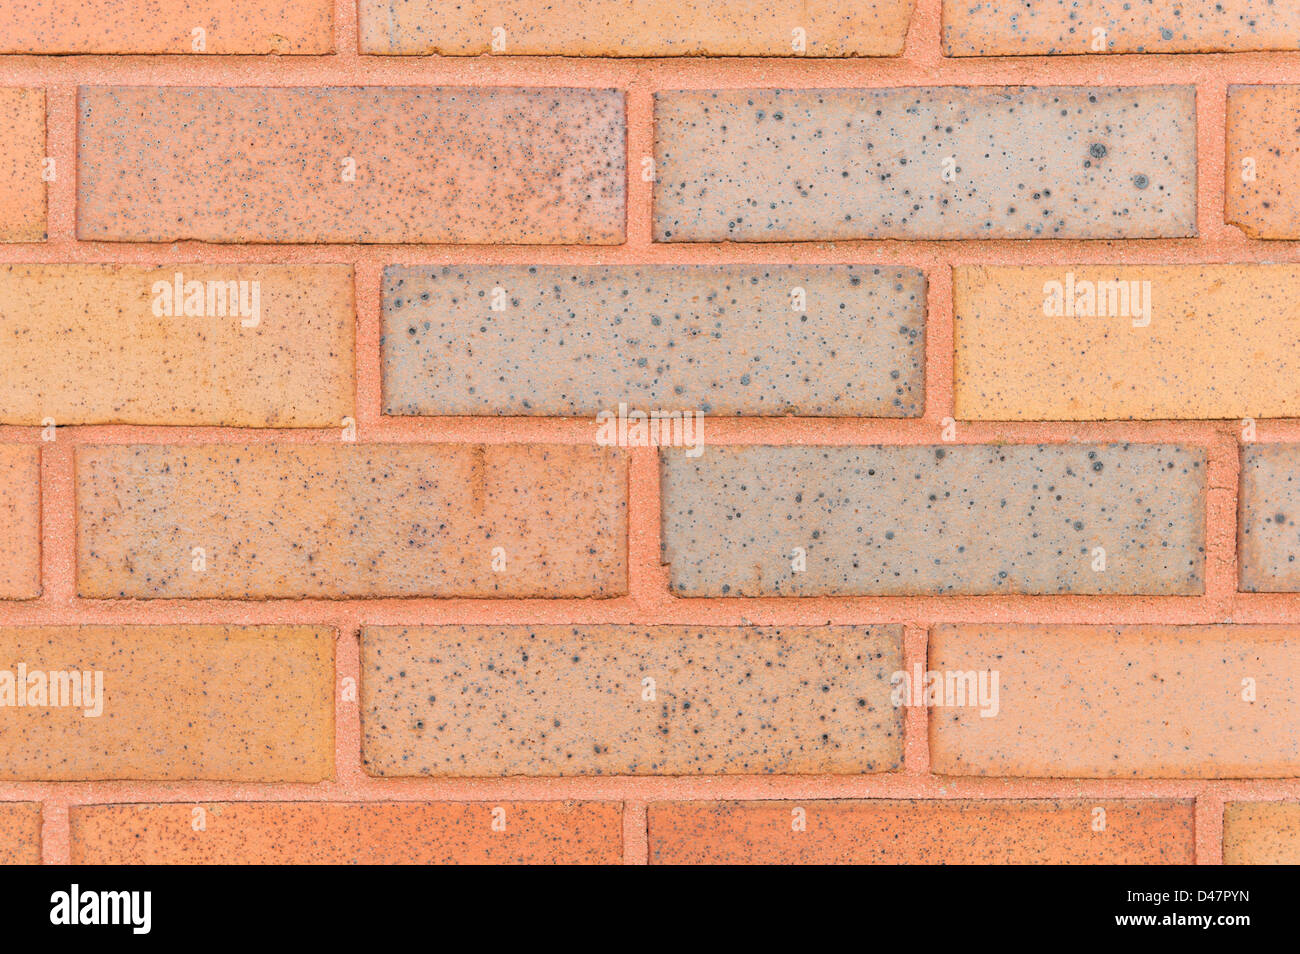 Element Pilier Brique Rouge red stock brick photos & red stock brick images - alamy